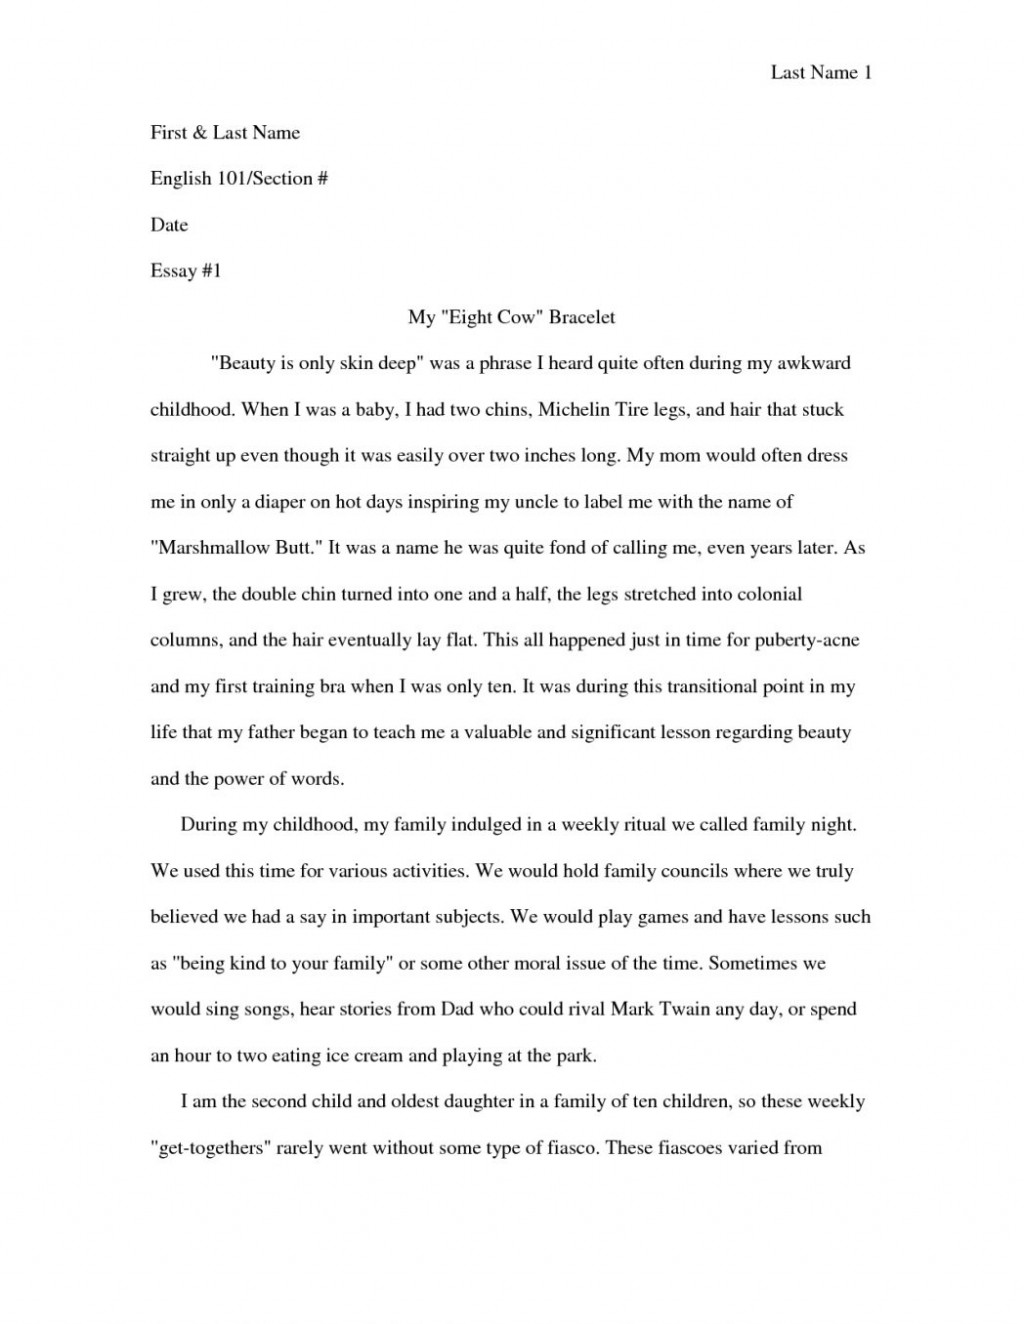 013 Essay Example How To Write Personal Narrative For College Students Writings And Essays Good Of Cover Throu Fascinating A Large